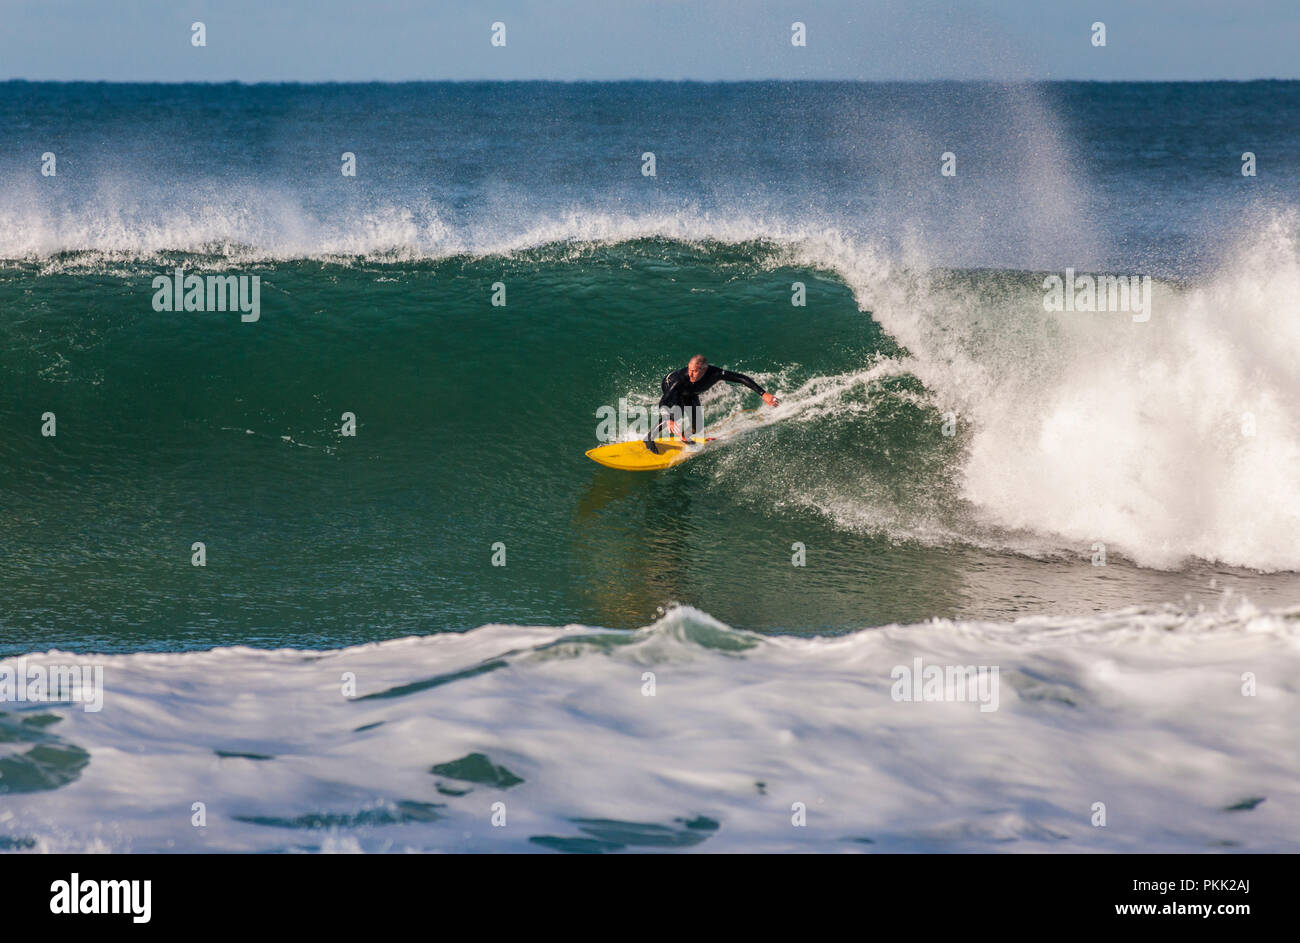 Surfer on a perfect right-hand wave, Bells Beach, Great Ocean Road, Victoria, Australia. - Stock Image